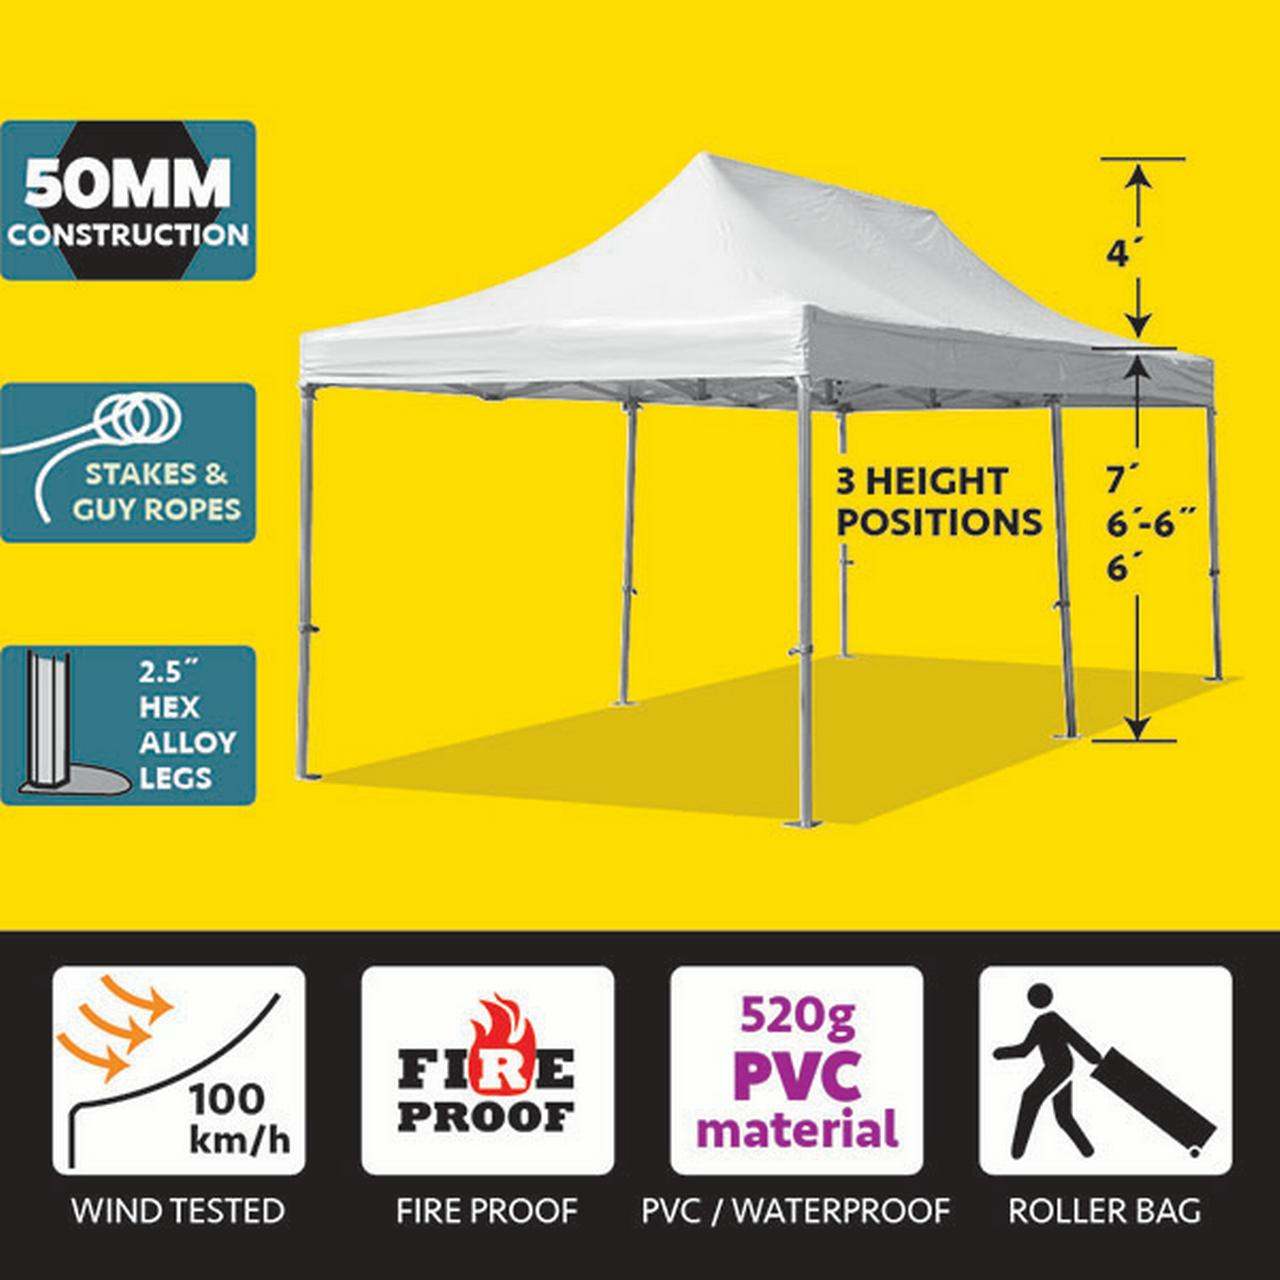 Party Tents Direct 10x20 50mm Speedy Pop Up Instant Canopy Event Tent, Various Colors